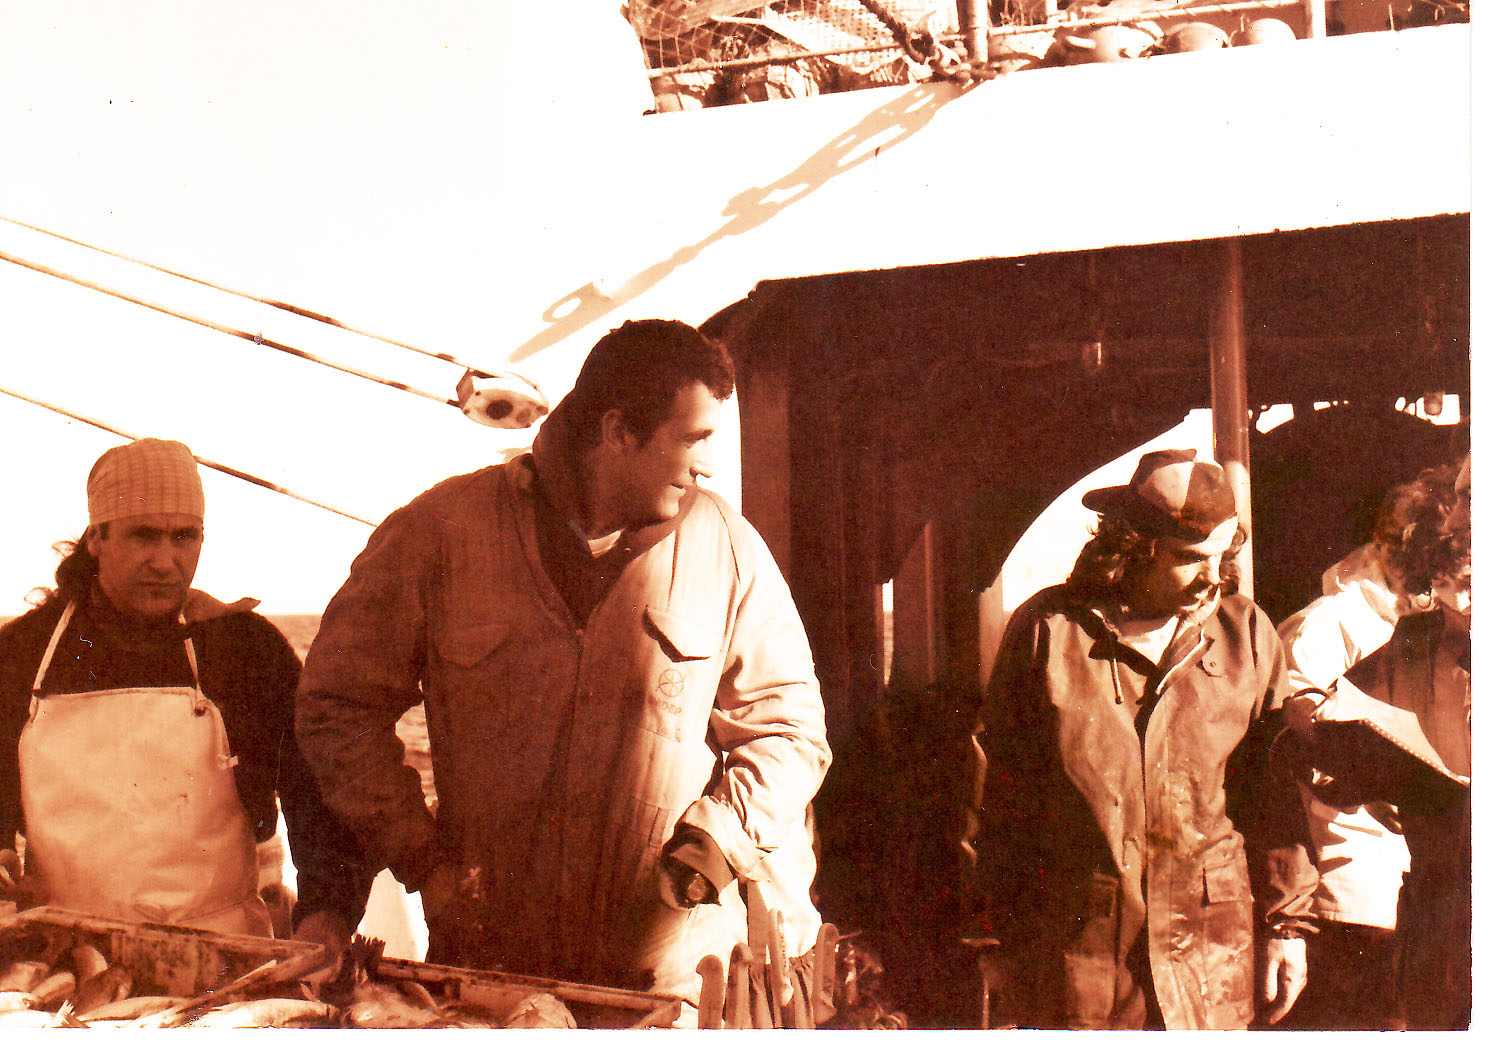 Impacting the benthos on a trawler in late 80s/early 90s